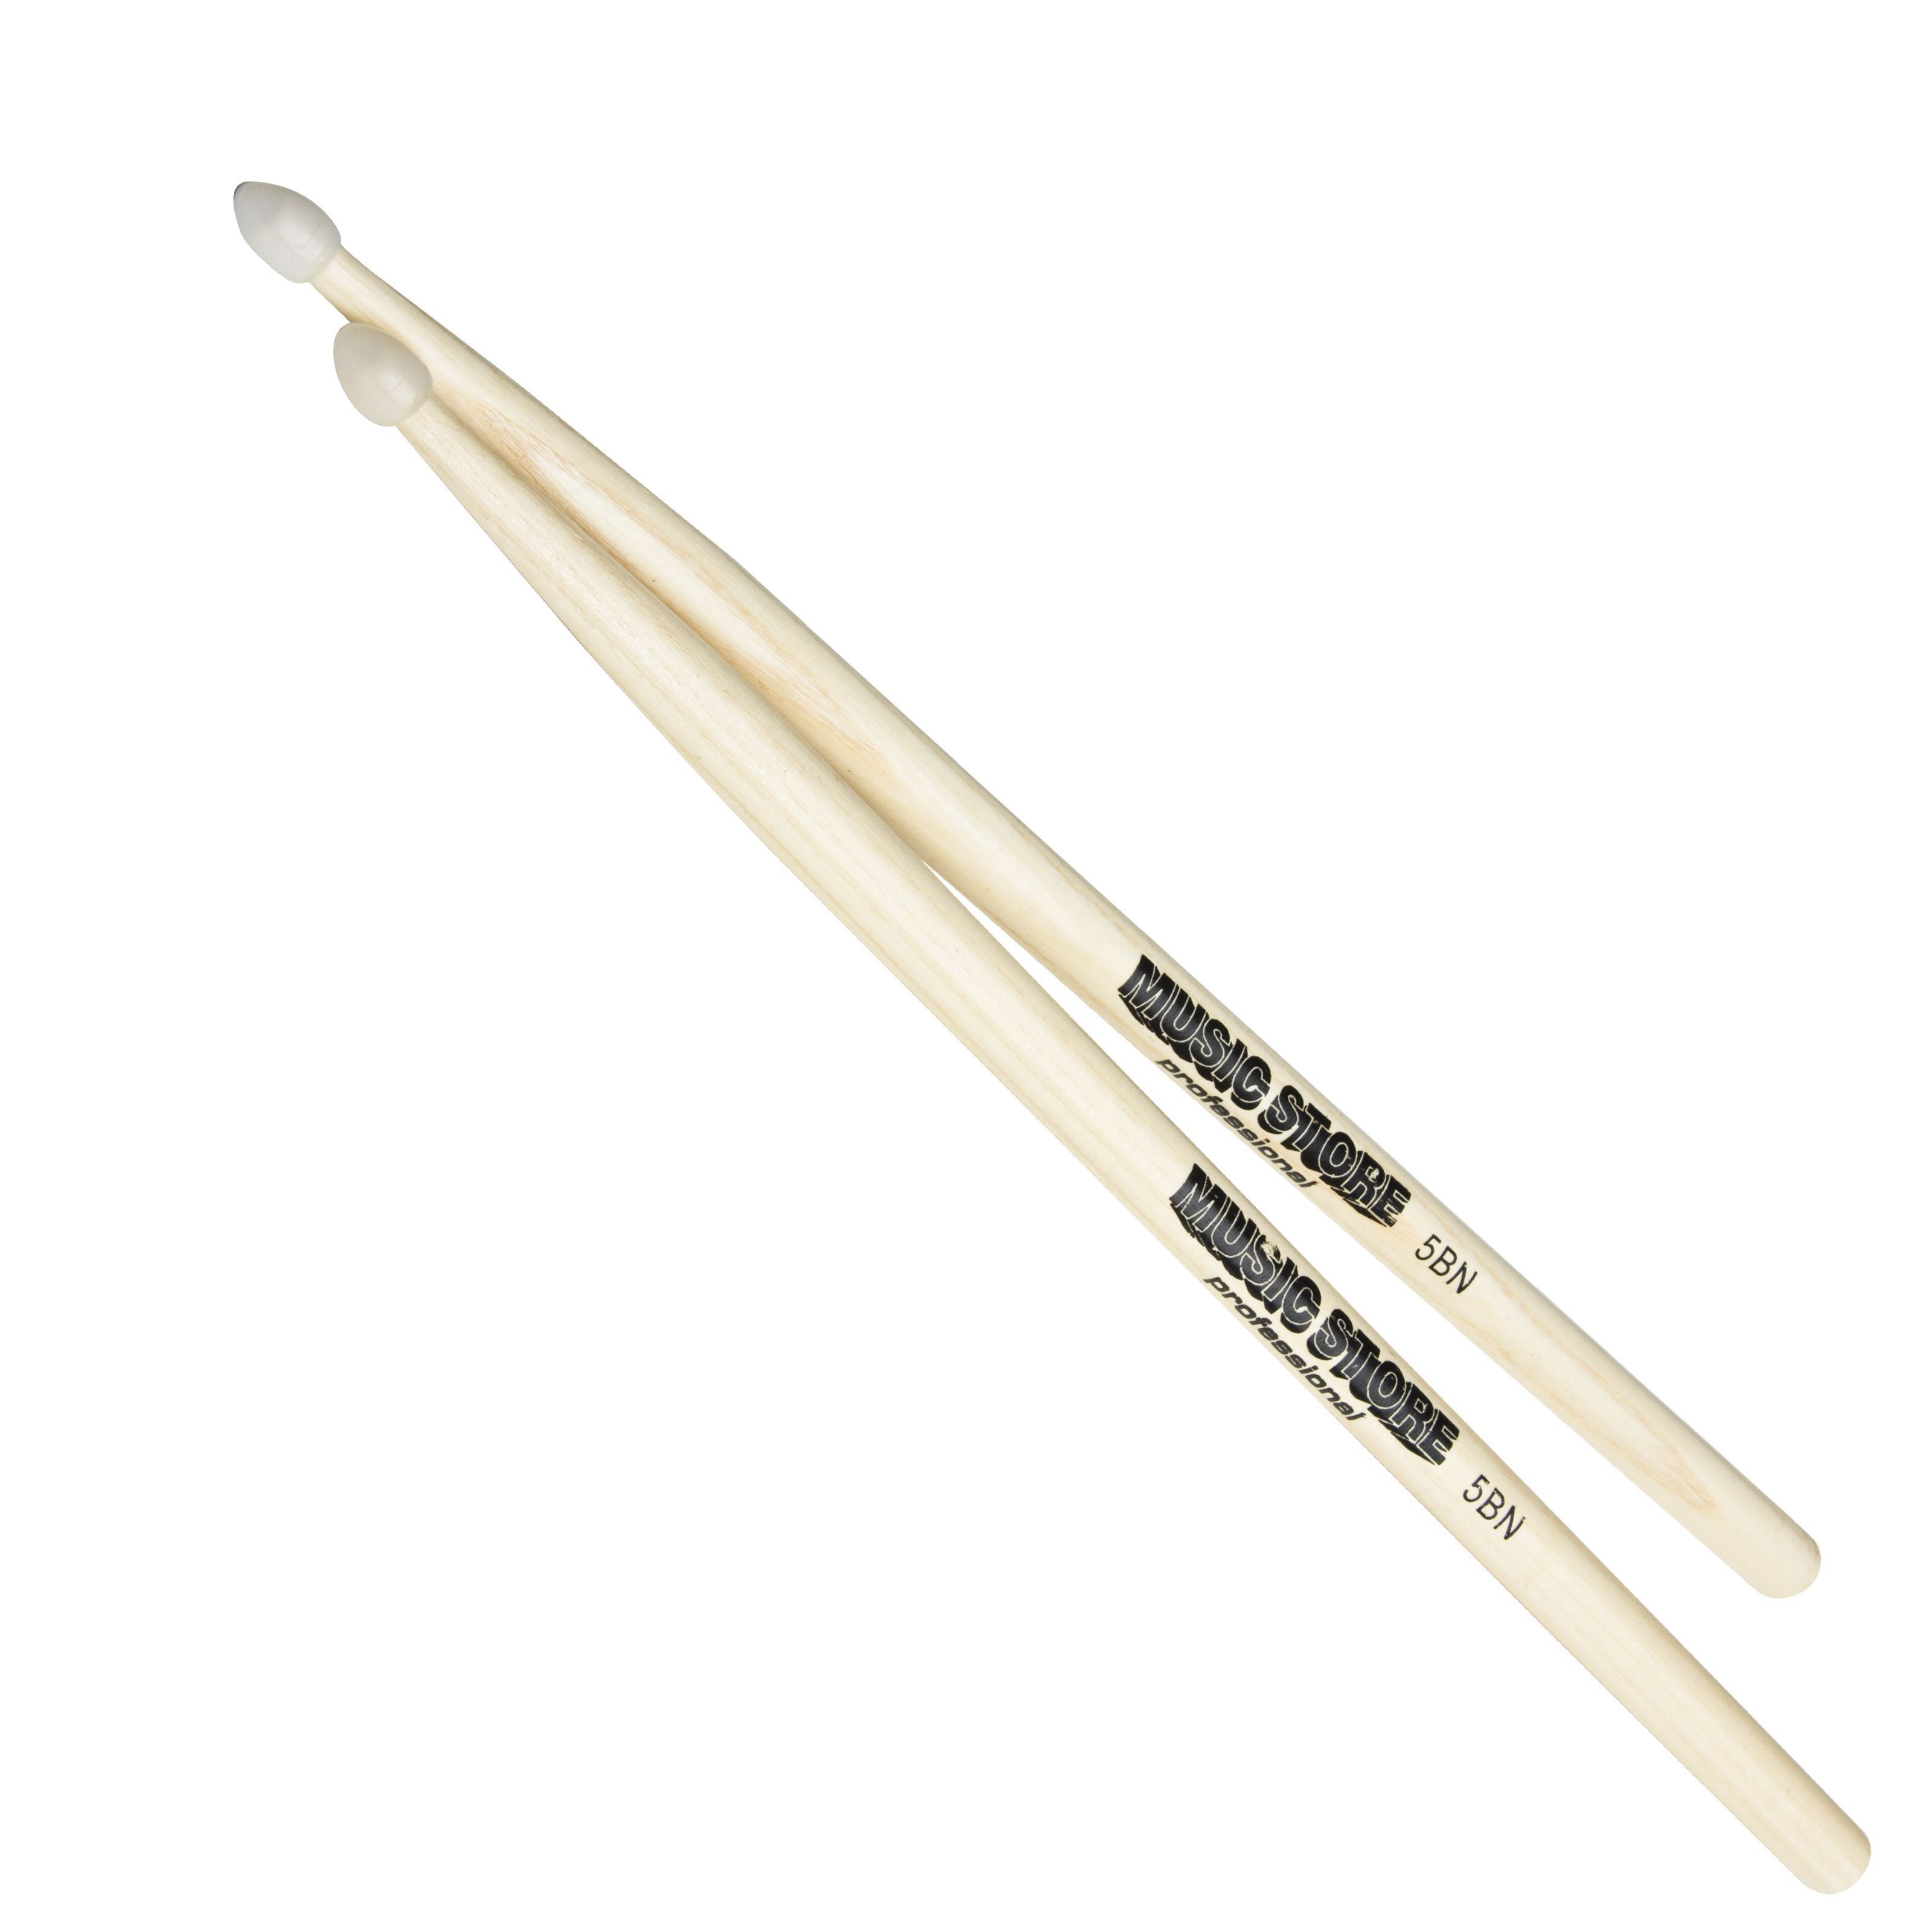 MUSIC STORE - 5BN Hickory Sticks, Nylon Tip 5B HICKORY NYLON TIP